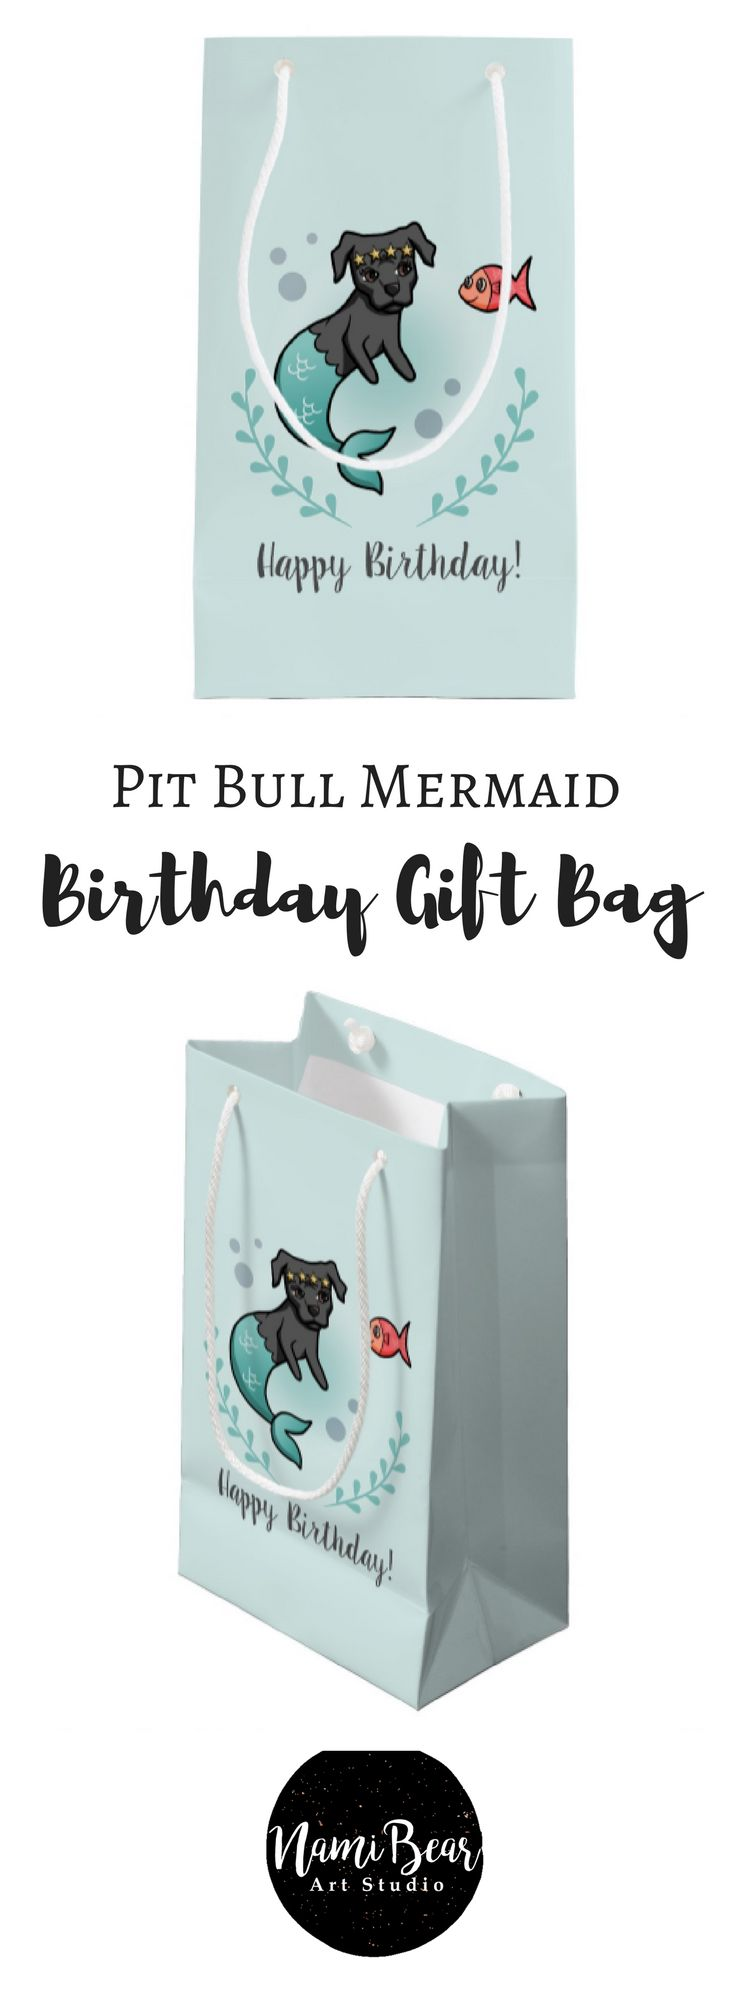 Mermaid Pit Bull Birthday Small Gift Bag This is a vector illustration of a mermaid pit bull and her little fish friend. The mermaid dog has a star crown on her head. There is a seaweed wreath at the bottom. #dog #dogs #dogLovers #pitbull #pitbulls #mermaid #ocean #sea #kids #children #birthday #happybrithday #wrapping #pet #pets #illustrations #illustration #animal #animals #whimsical